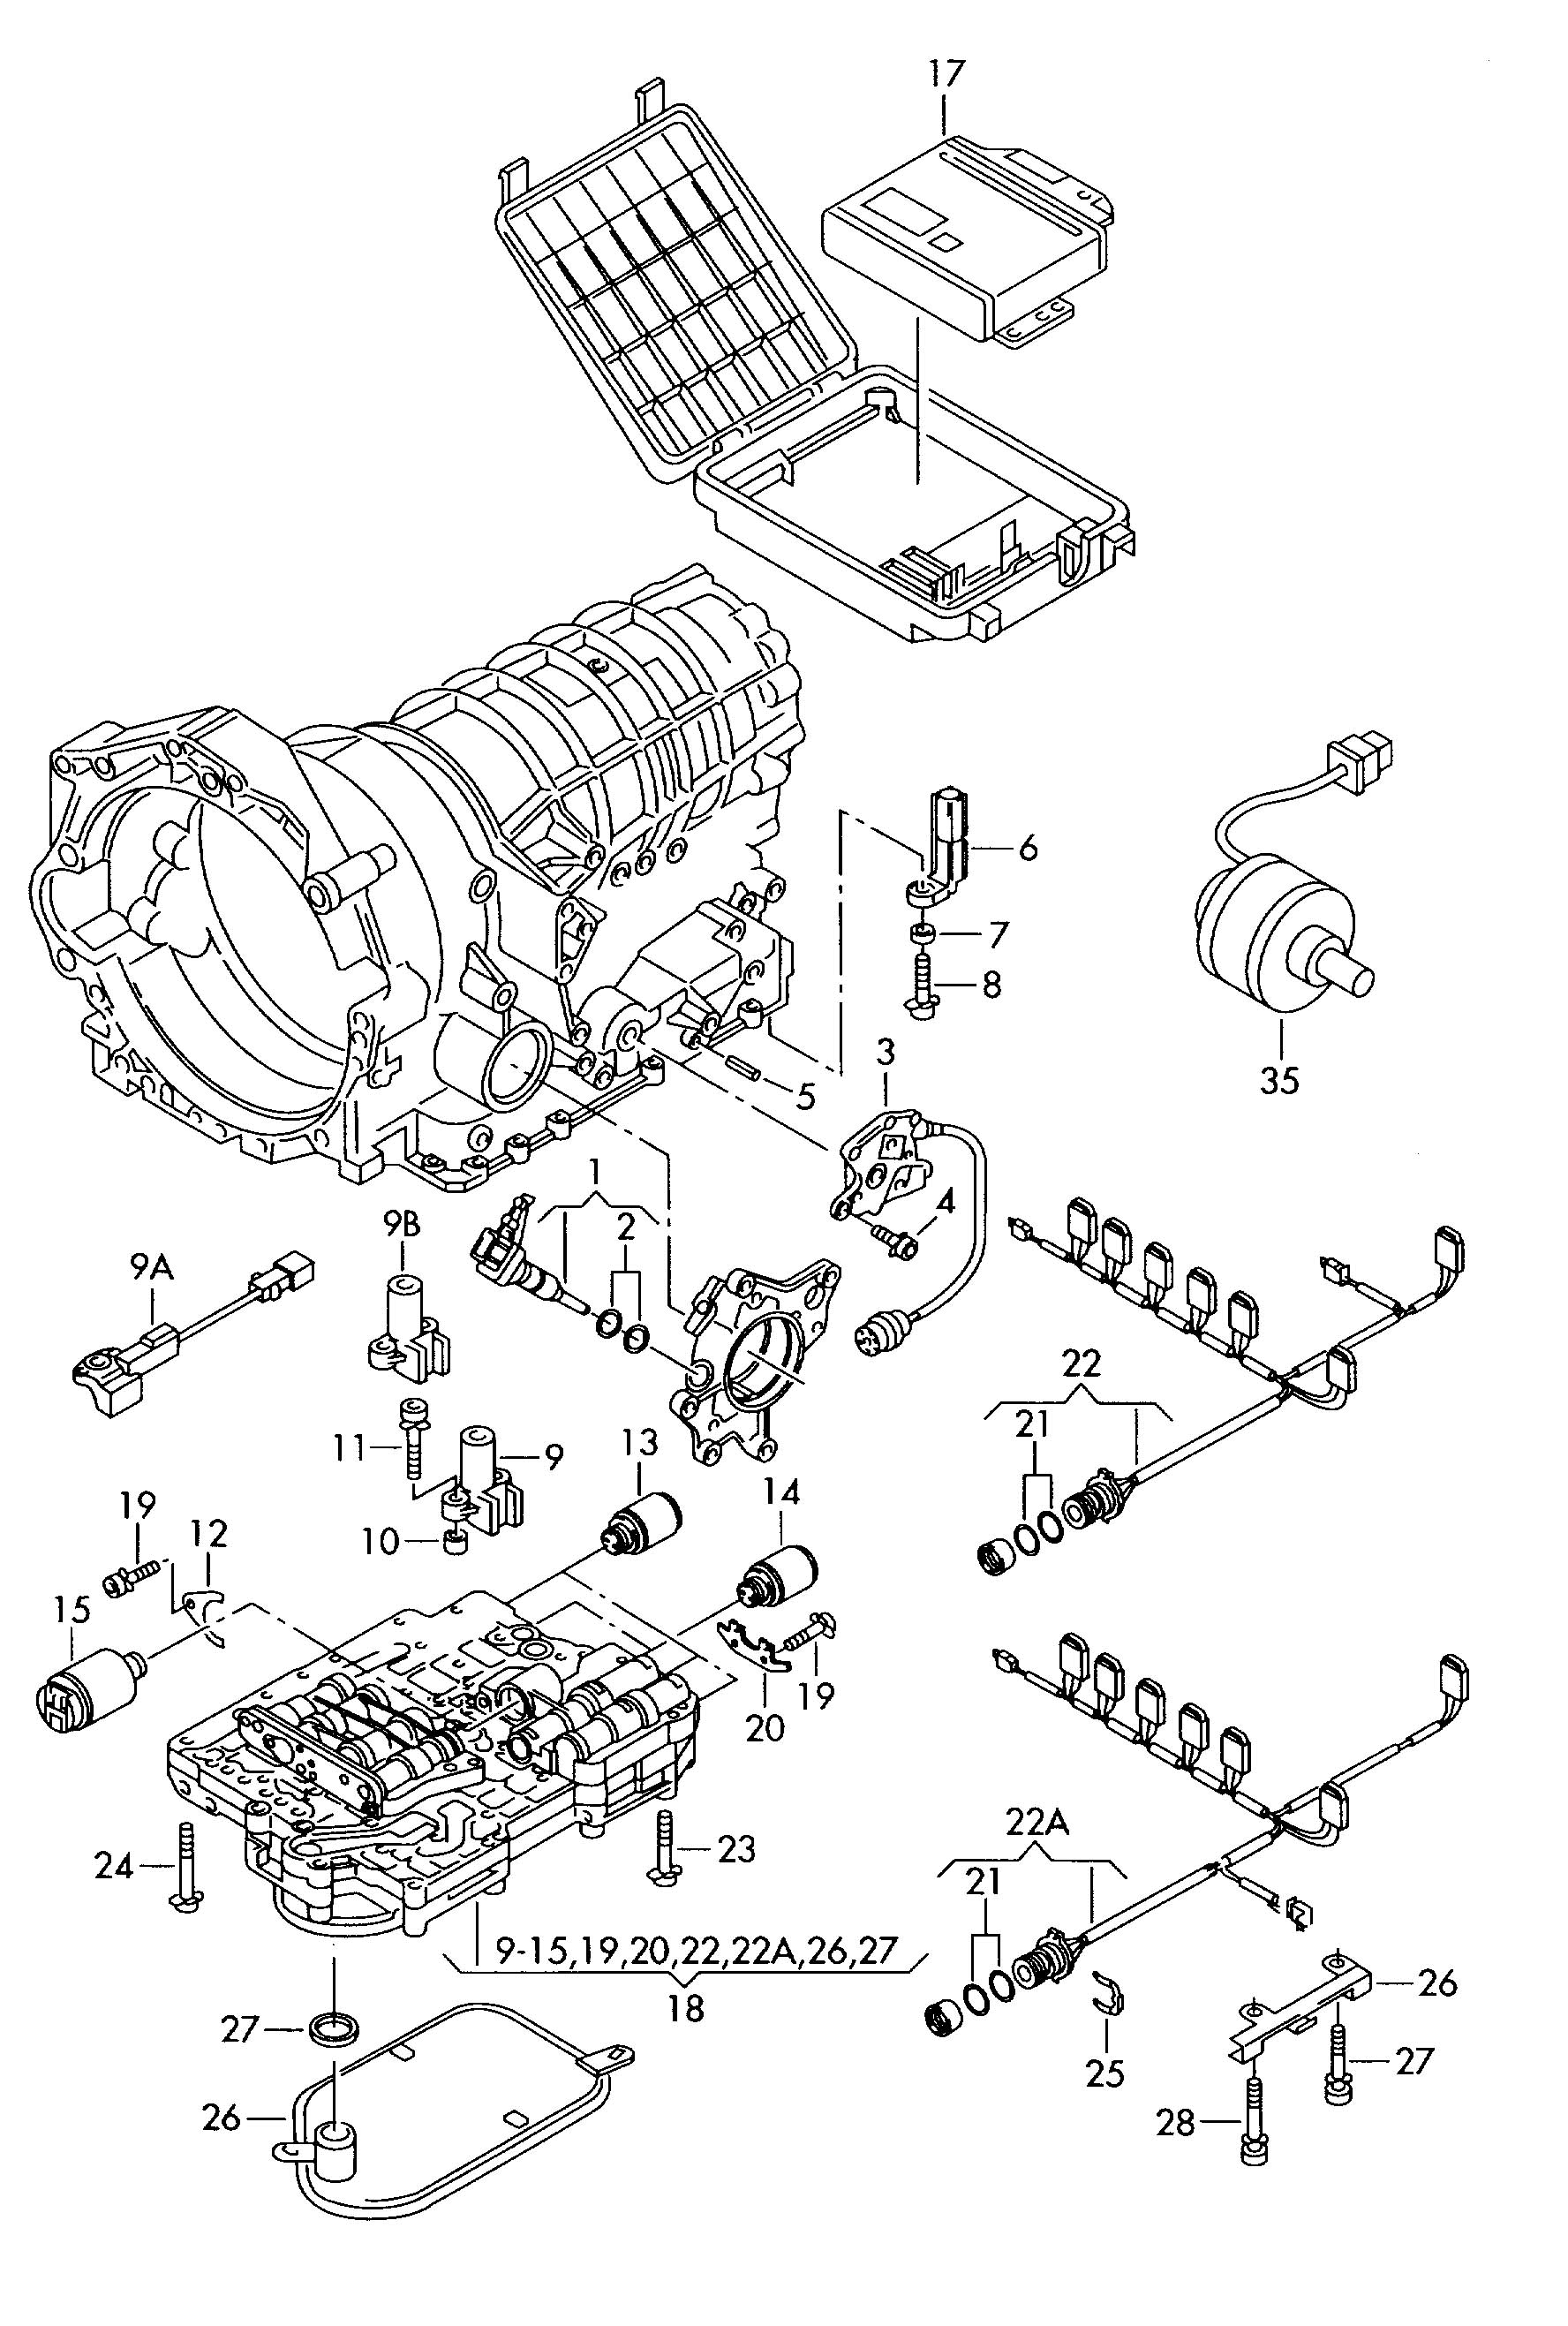 tiguan transmission diagram  tiguan  free engine image for